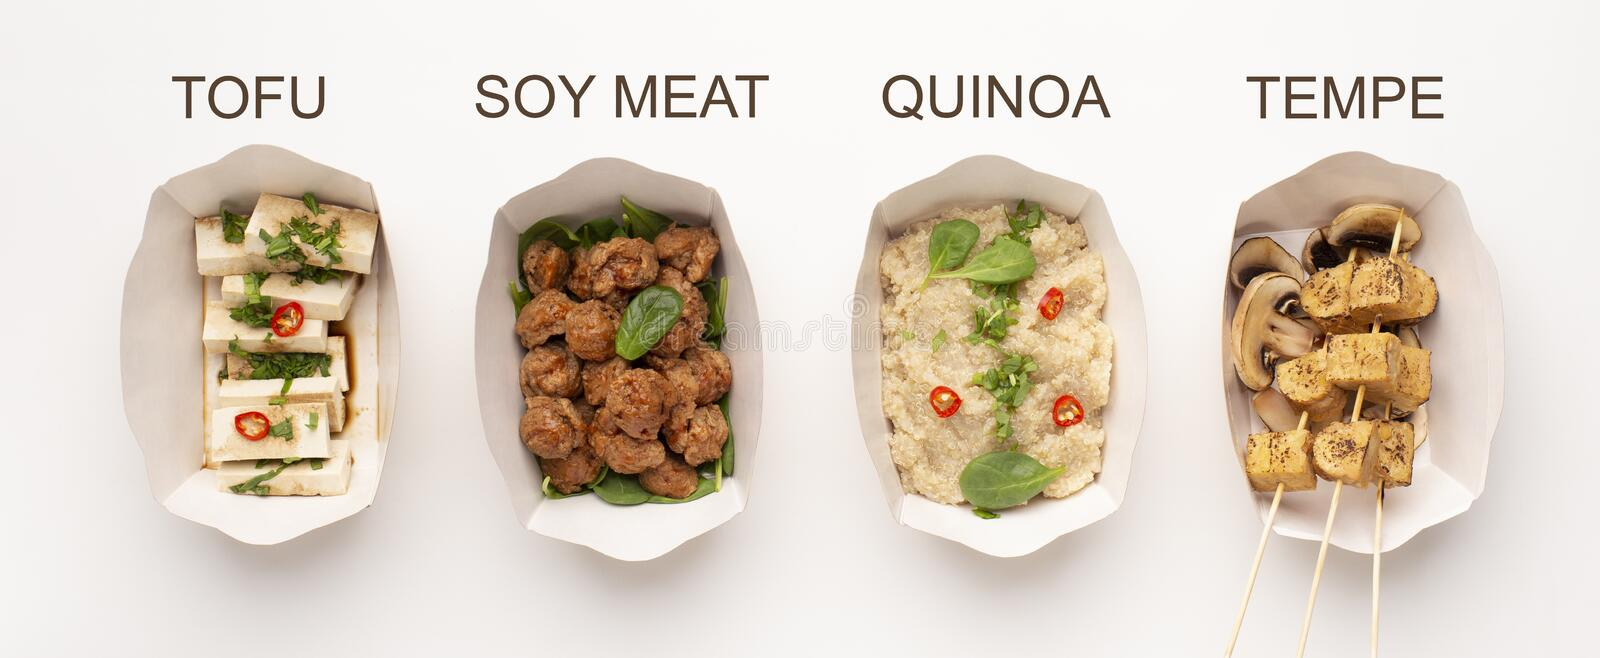 Tofu, soy meat, quinoa and tempe served in paper plates. Meatless menu. Tofu, soy meat, quinoa and tempe served in paper plates, panorama stock photography